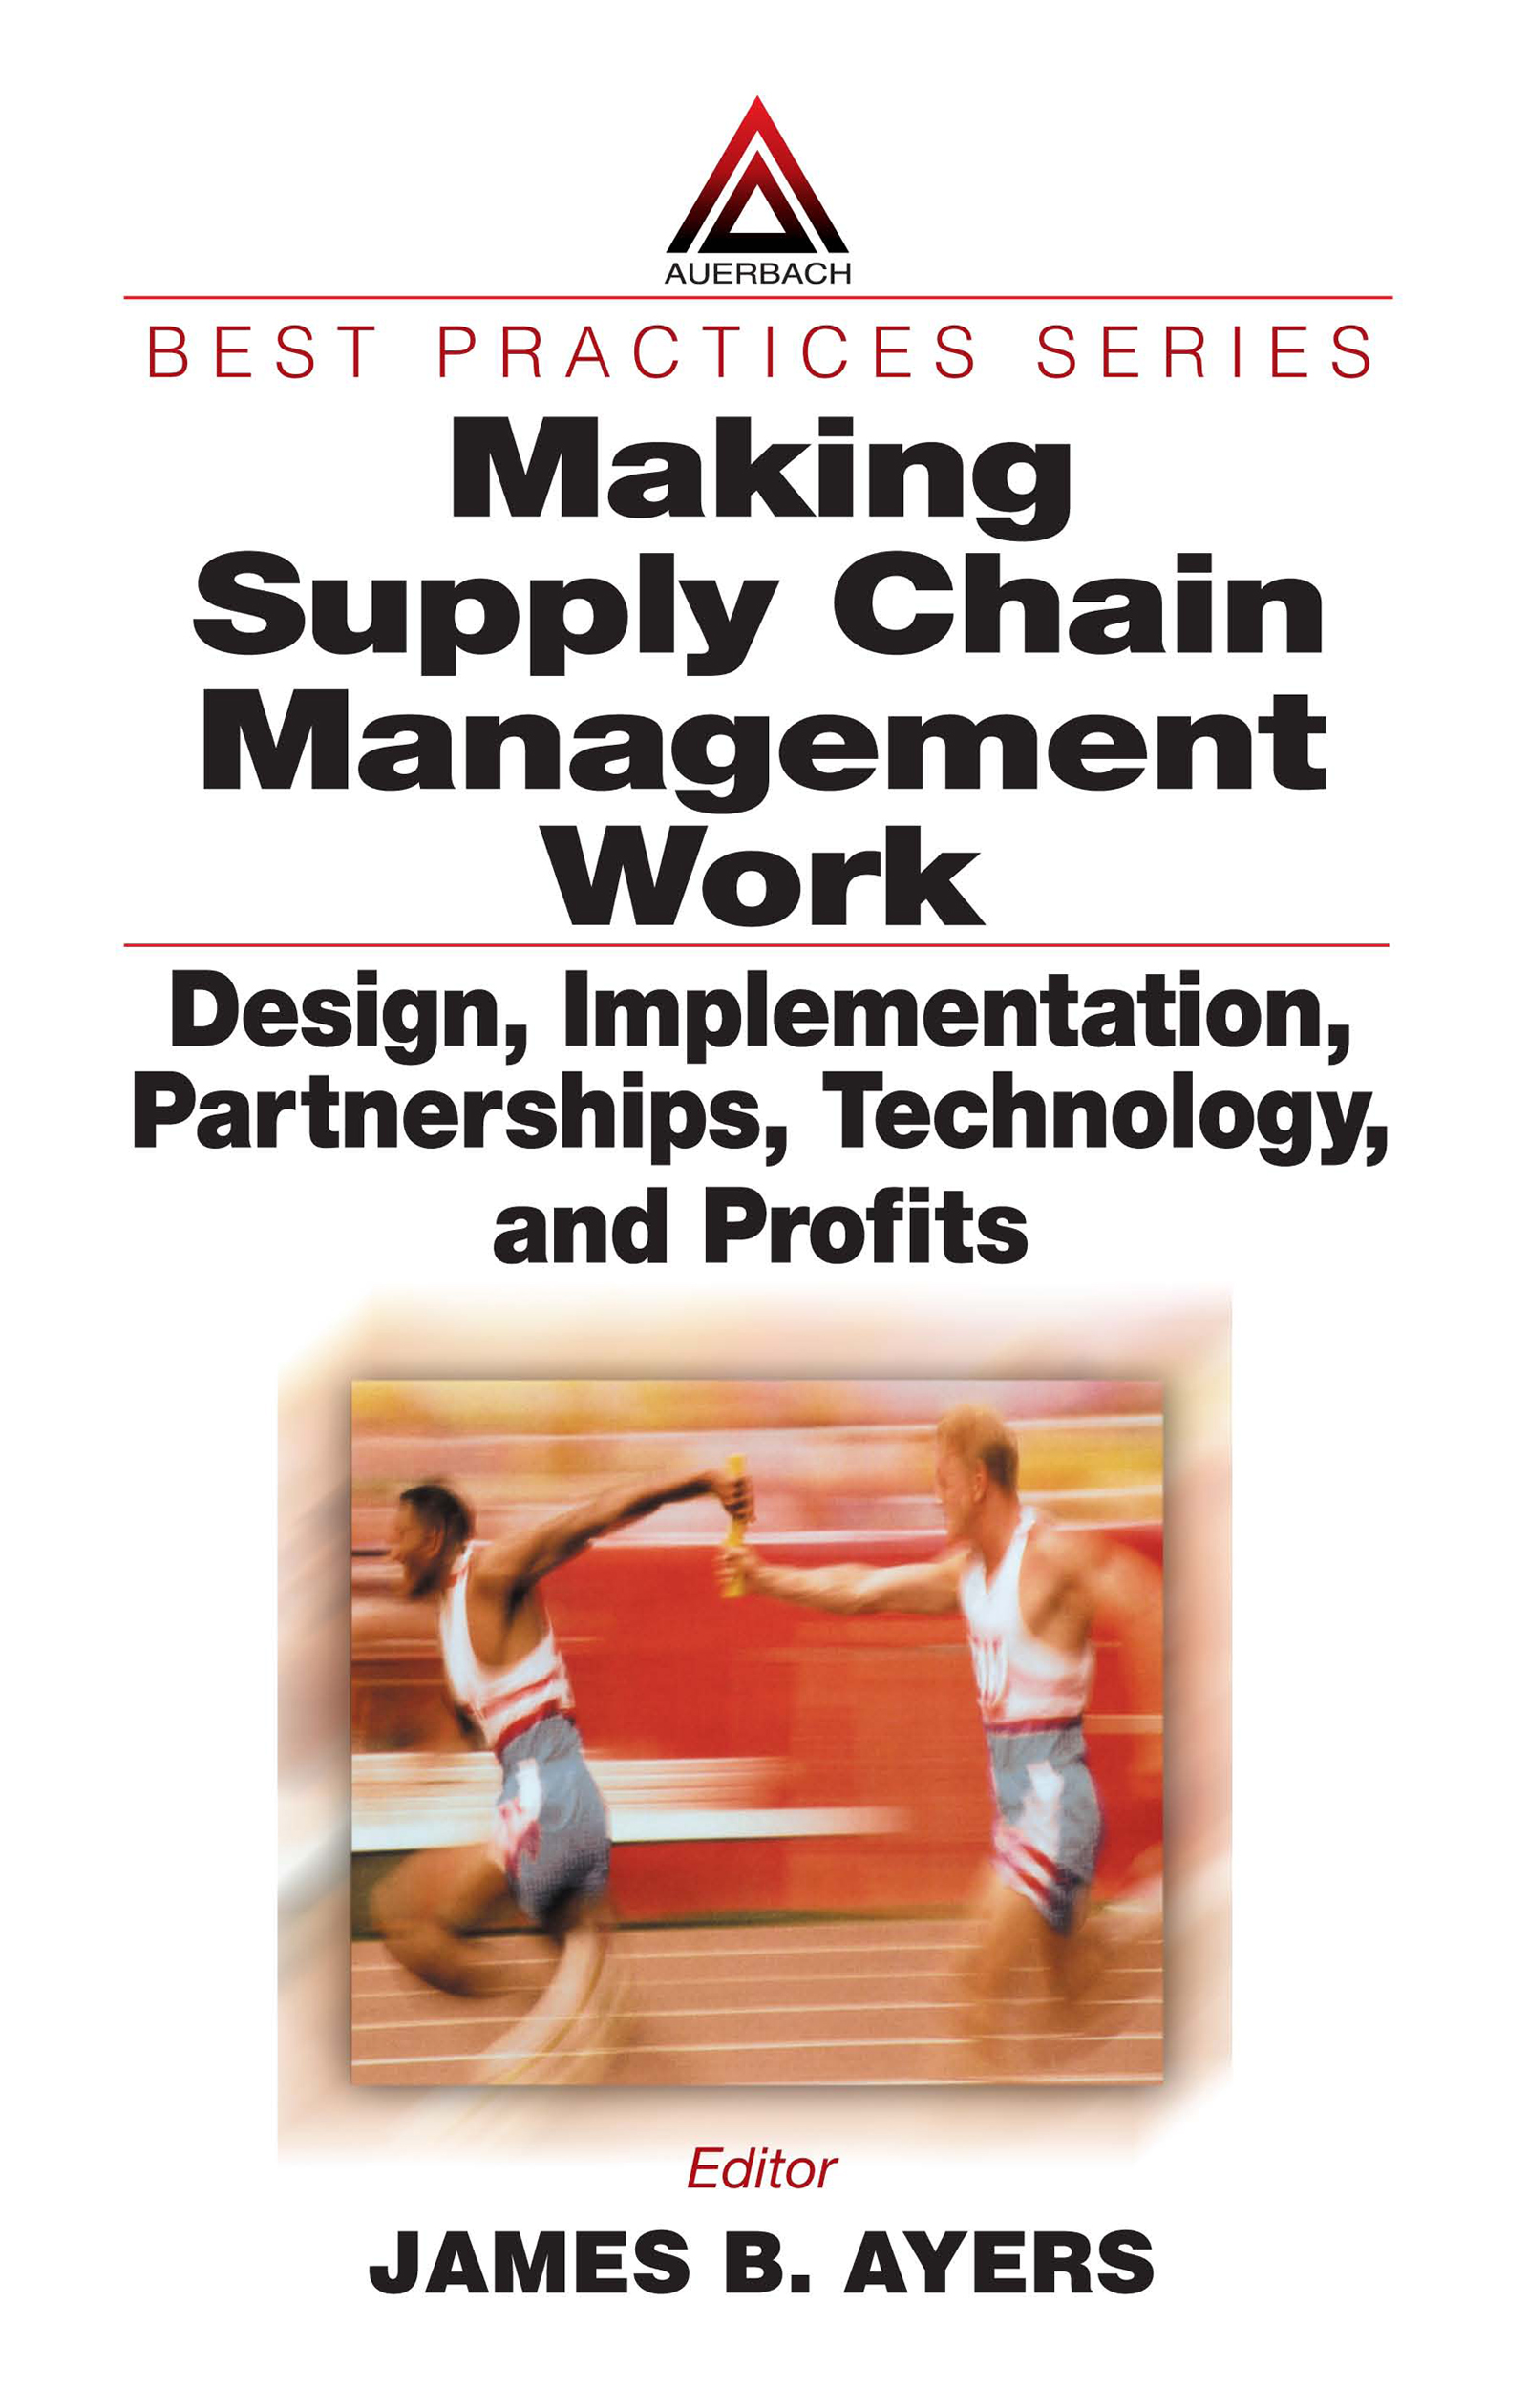 Section 6: Task 5: Making Money from the Supply Chain